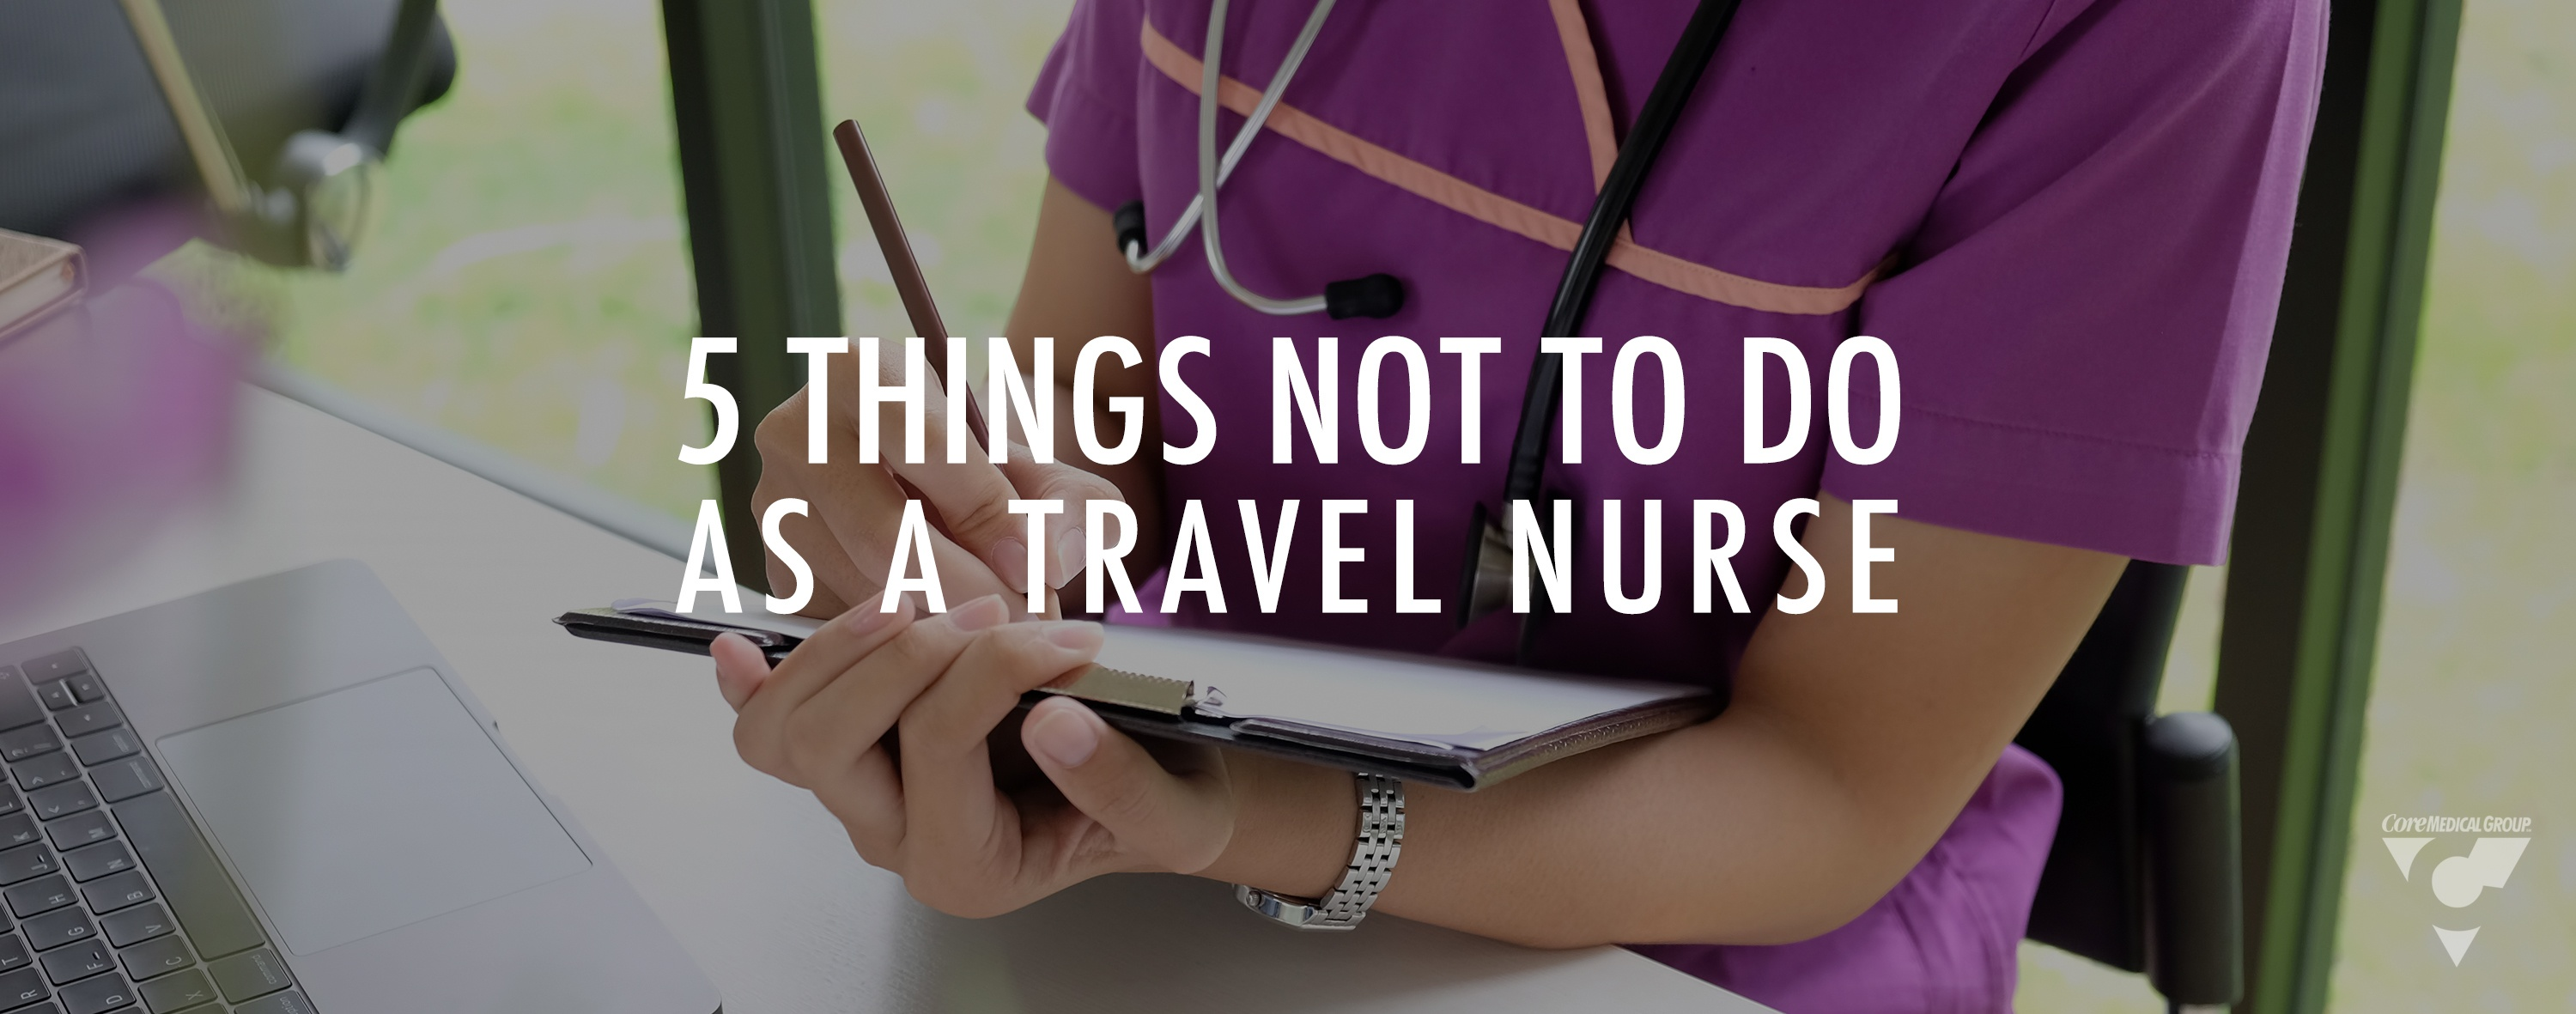 Core Medical Group Five Things Not to Do as a Travel Nurse